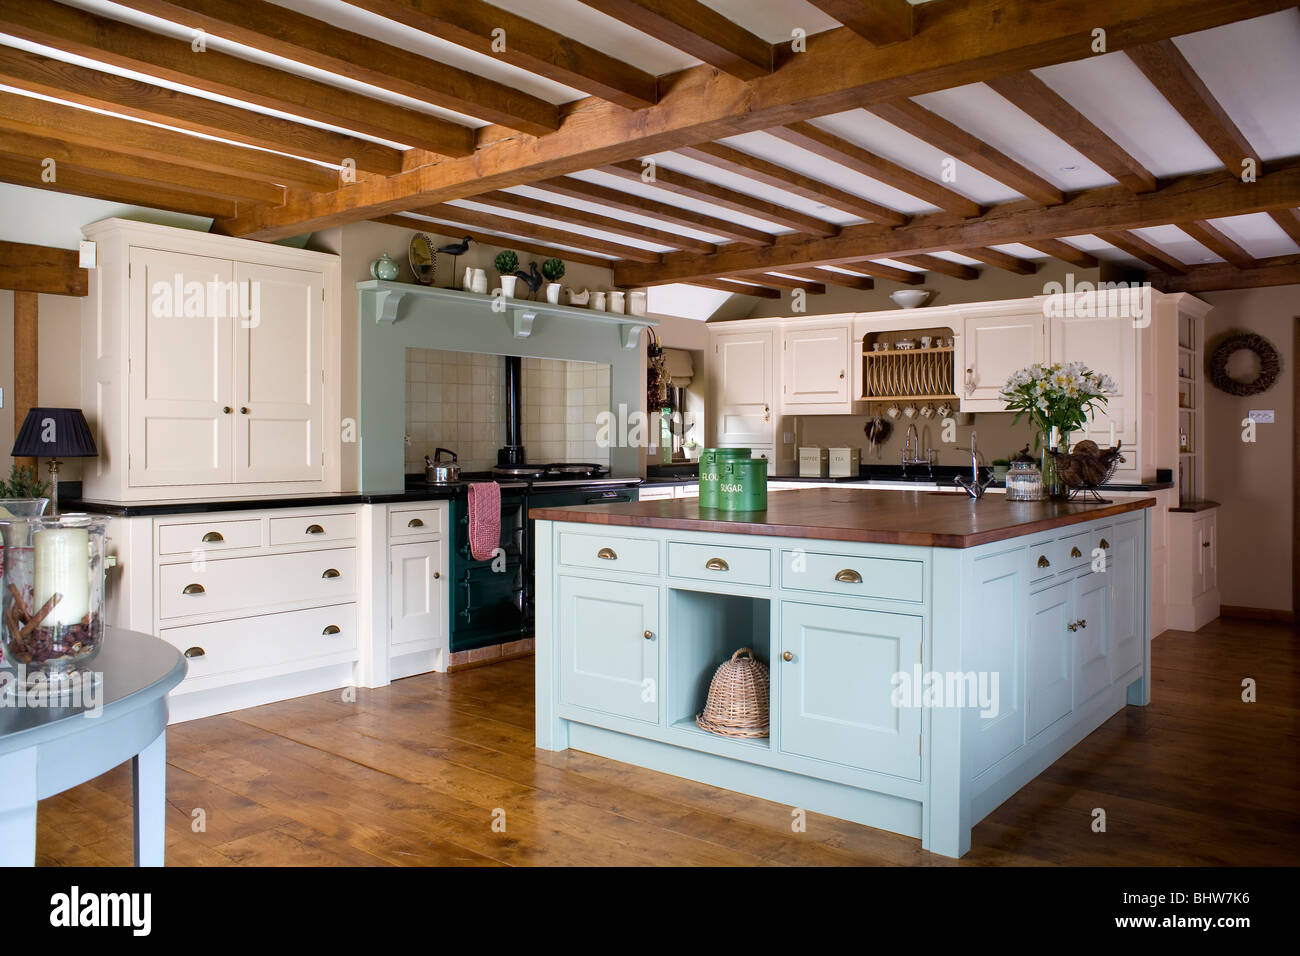 Pastel Blue Island Unit In Large Cream Country Kitchen With Beamed Ceiling